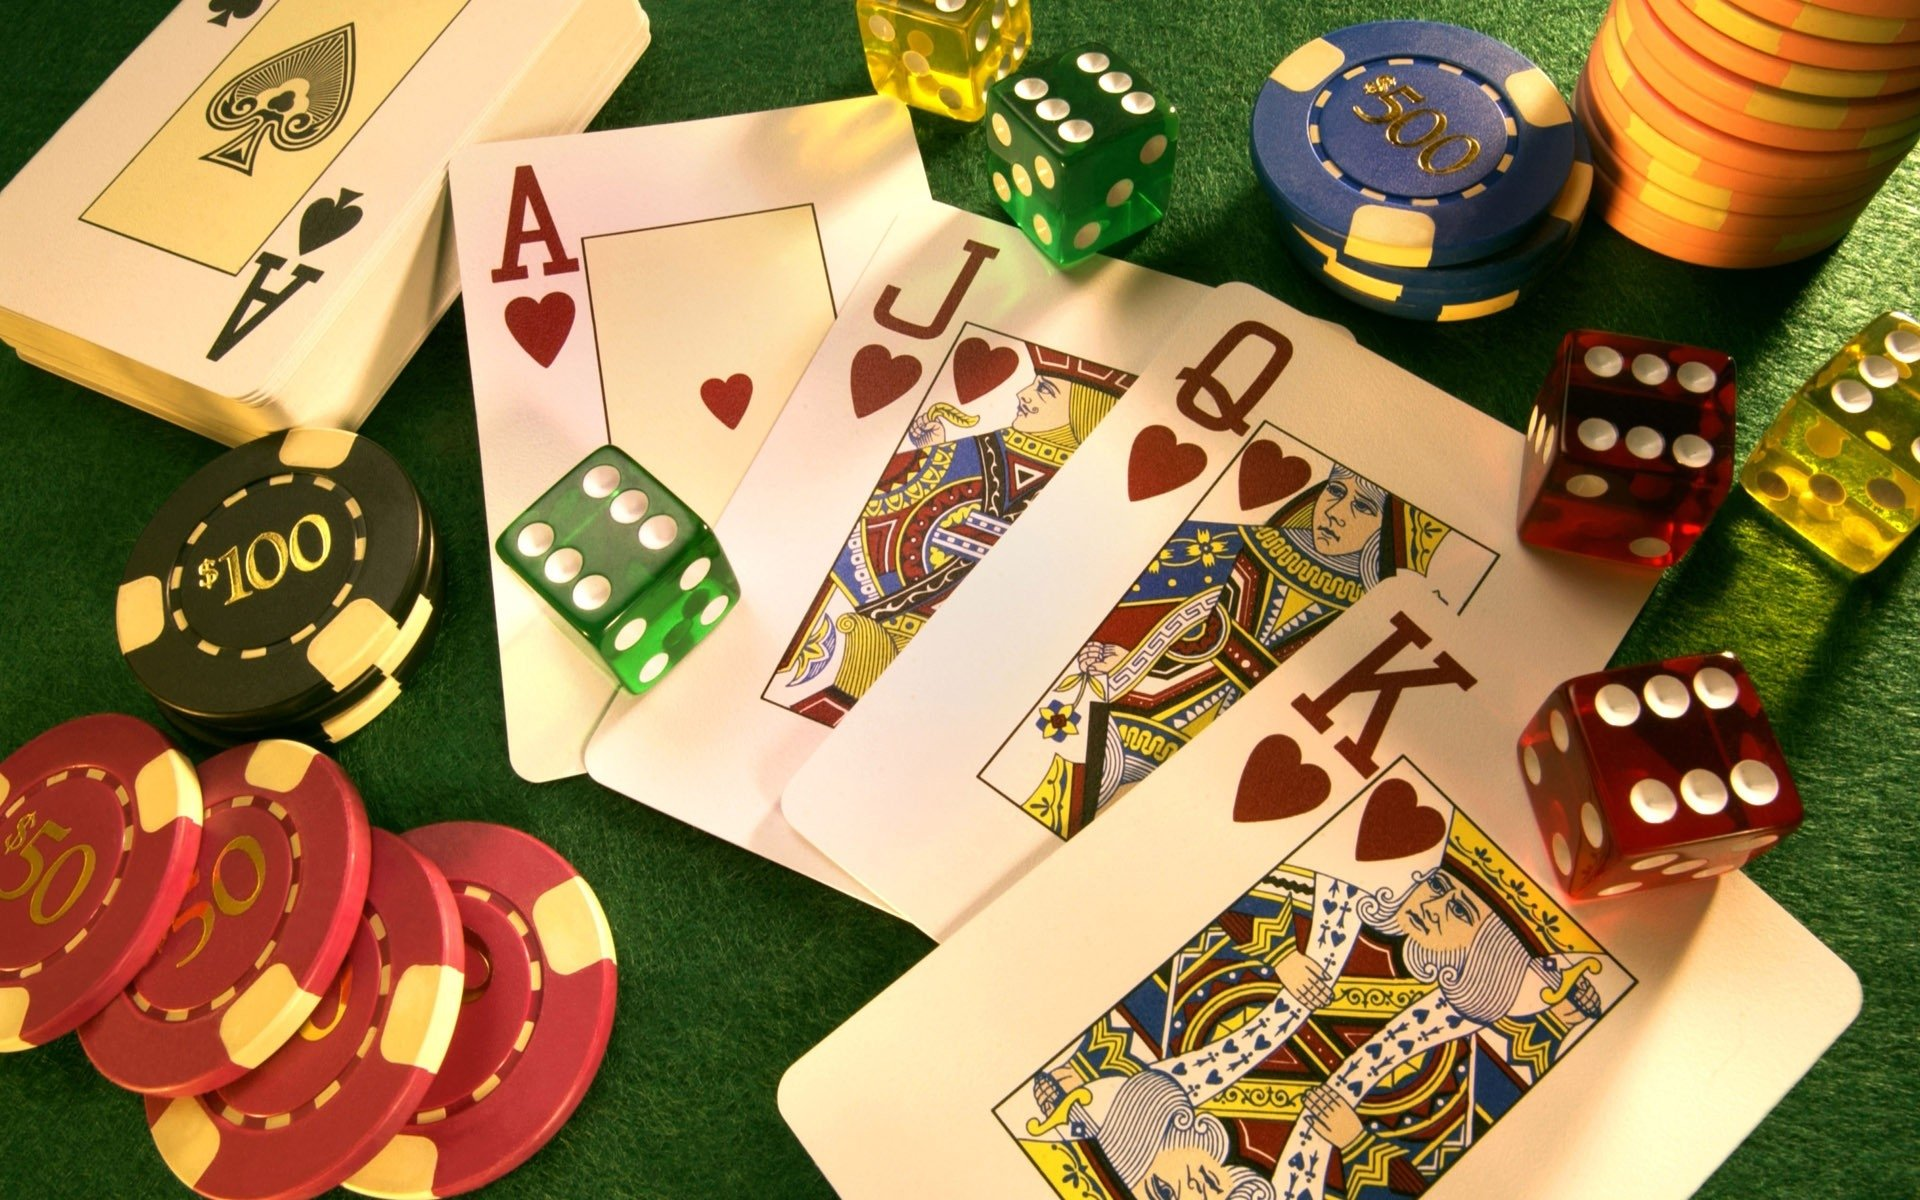 The Argument Over Gambling